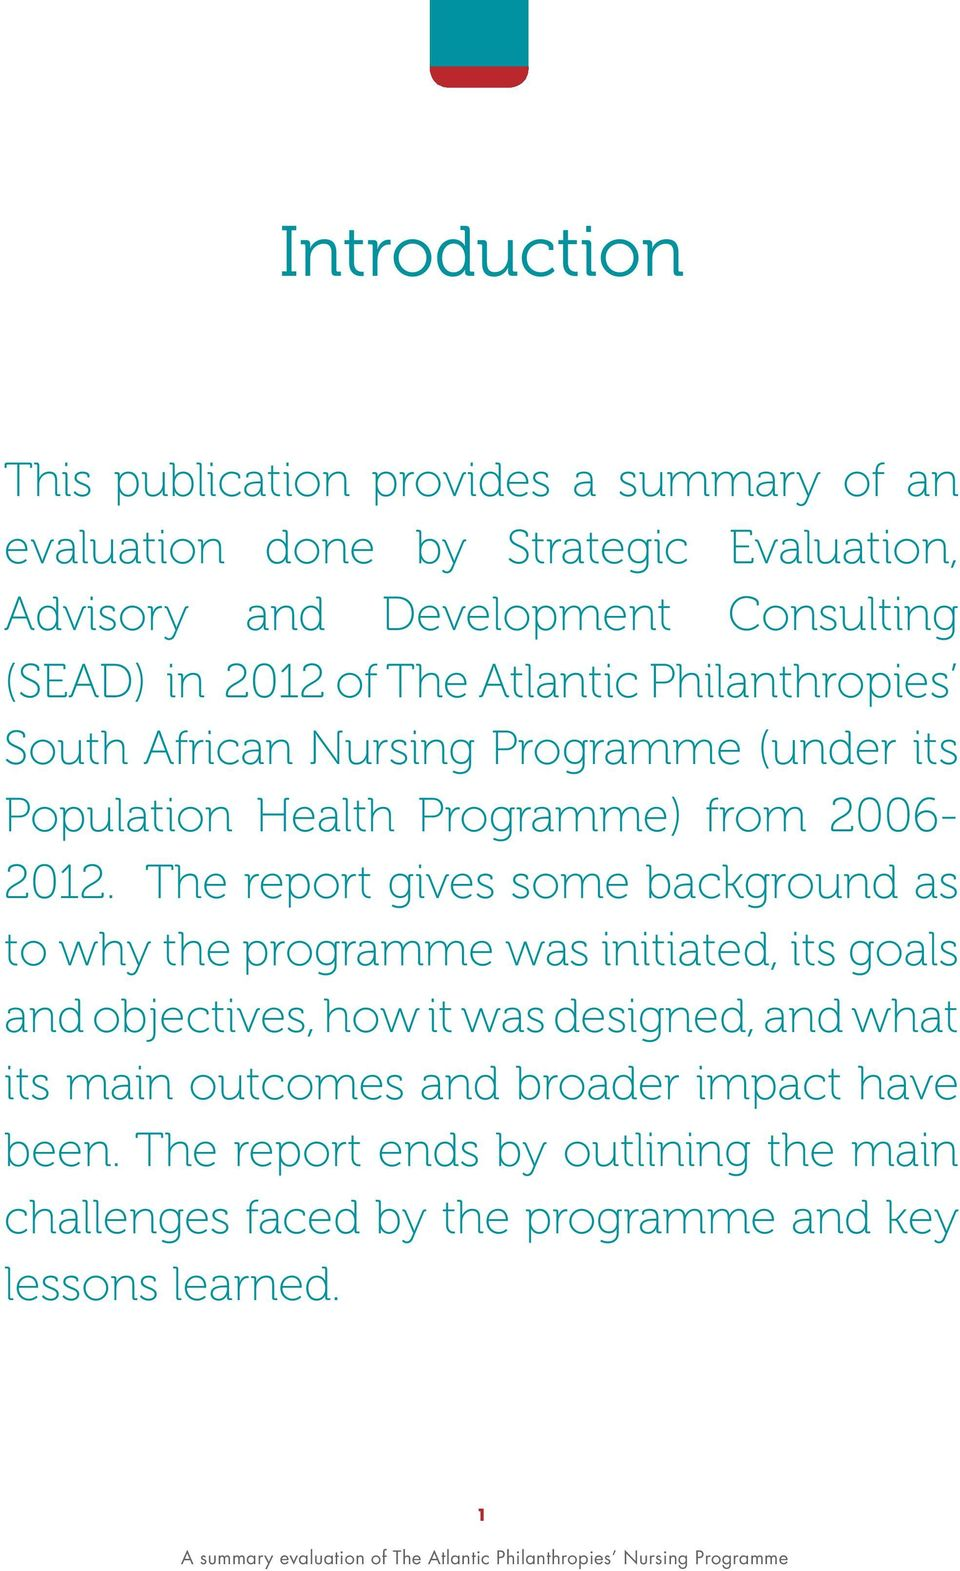 The report gives some background as to why the programme was initiated, its goals and objectives, how it was designed, and what its main outcomes and